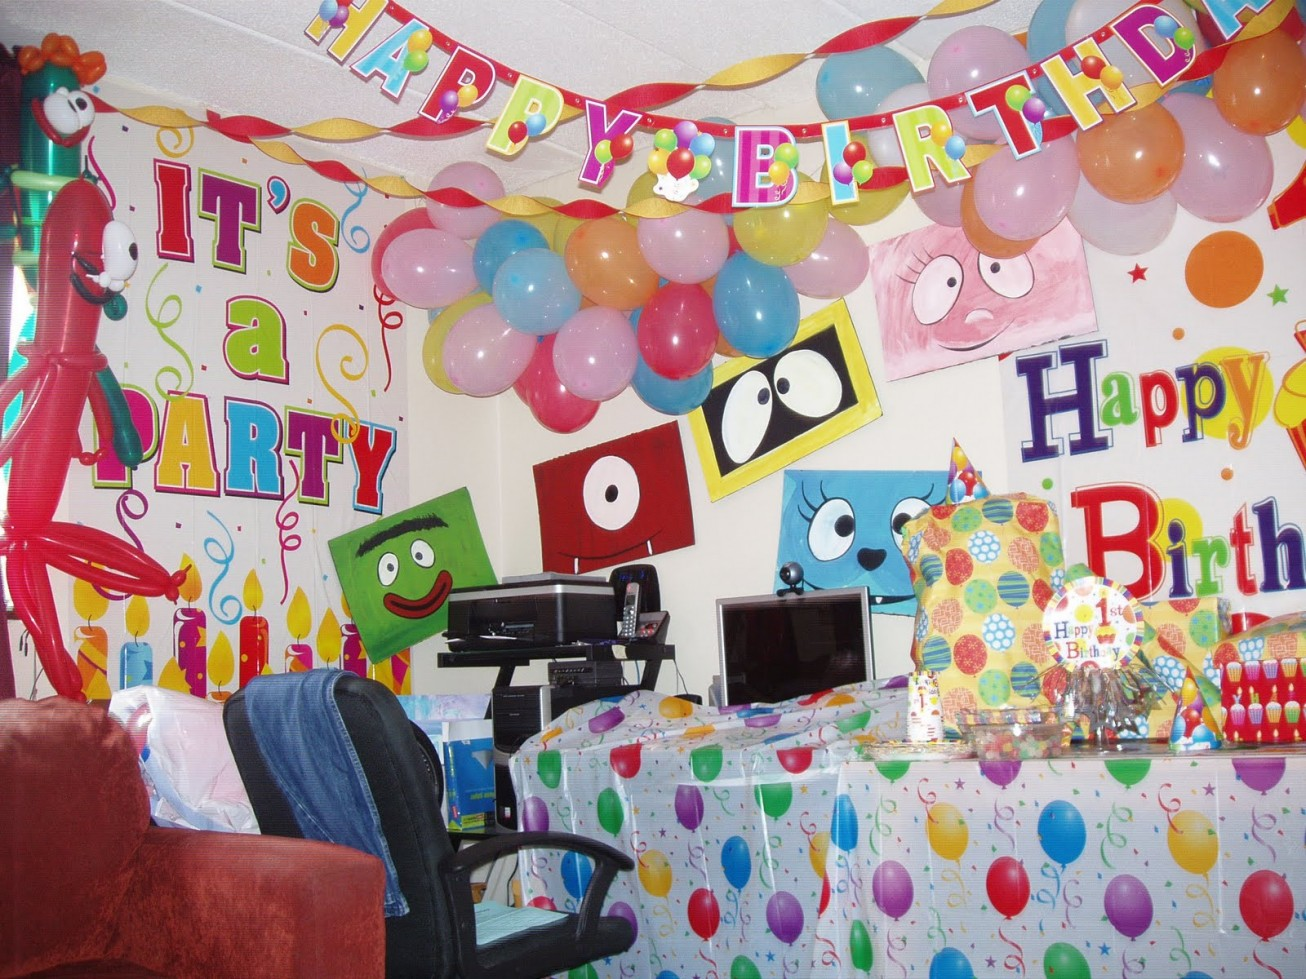 Birthday room decoration ideas 2016 2017 fashion trends for Room decor ideas for birthday